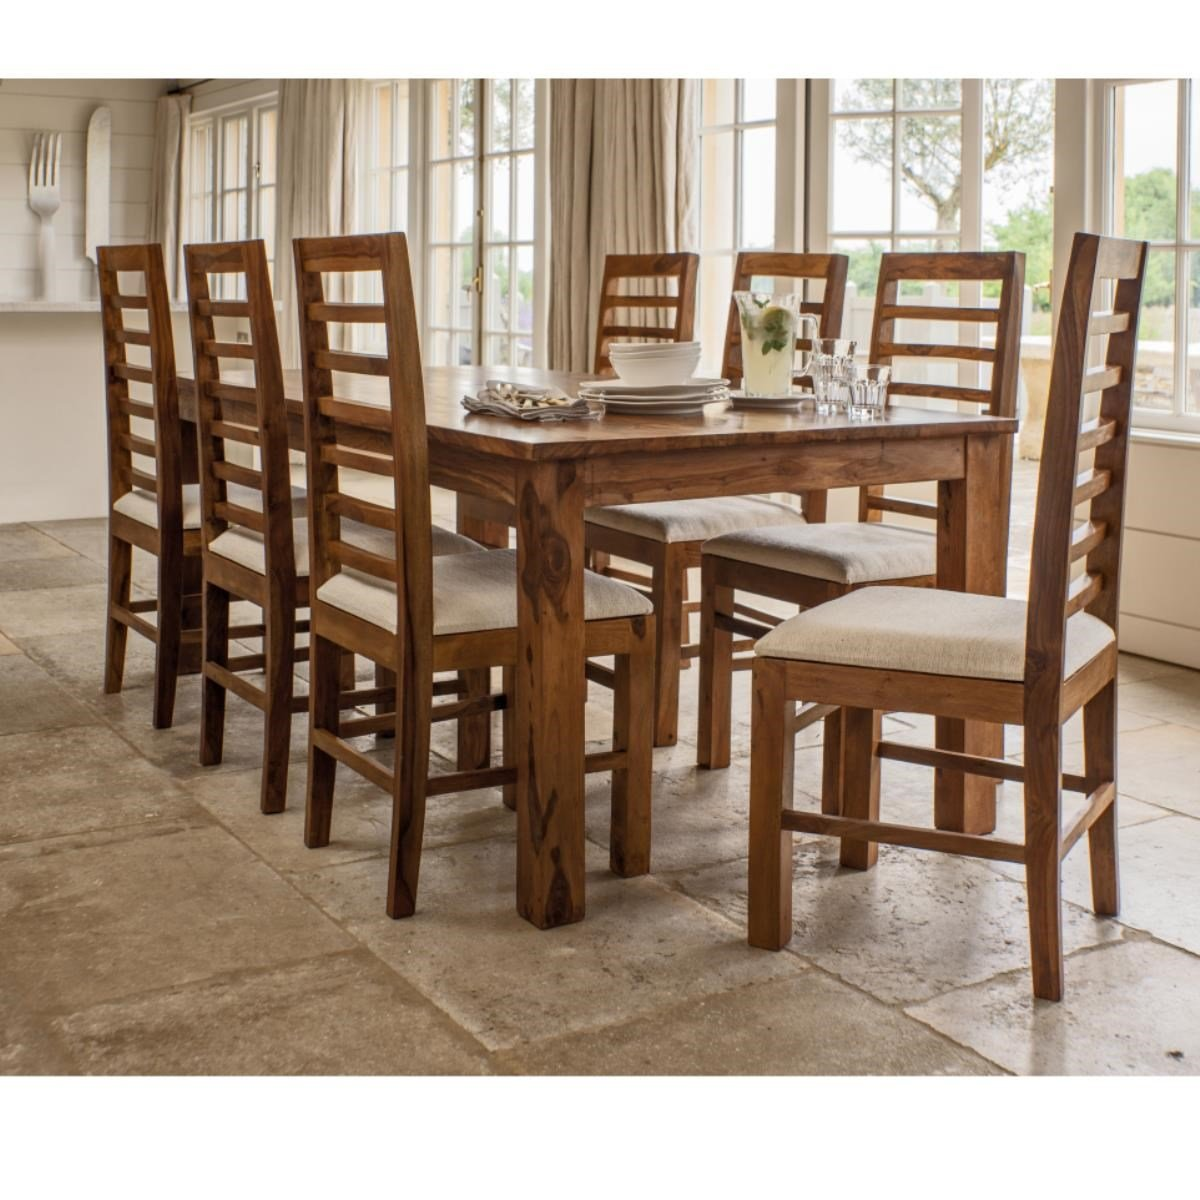 Aprodz Solid Wood Orlando 8 Seater Dining Table Set For Home Dining Furniture Amazon In Home Kitchen